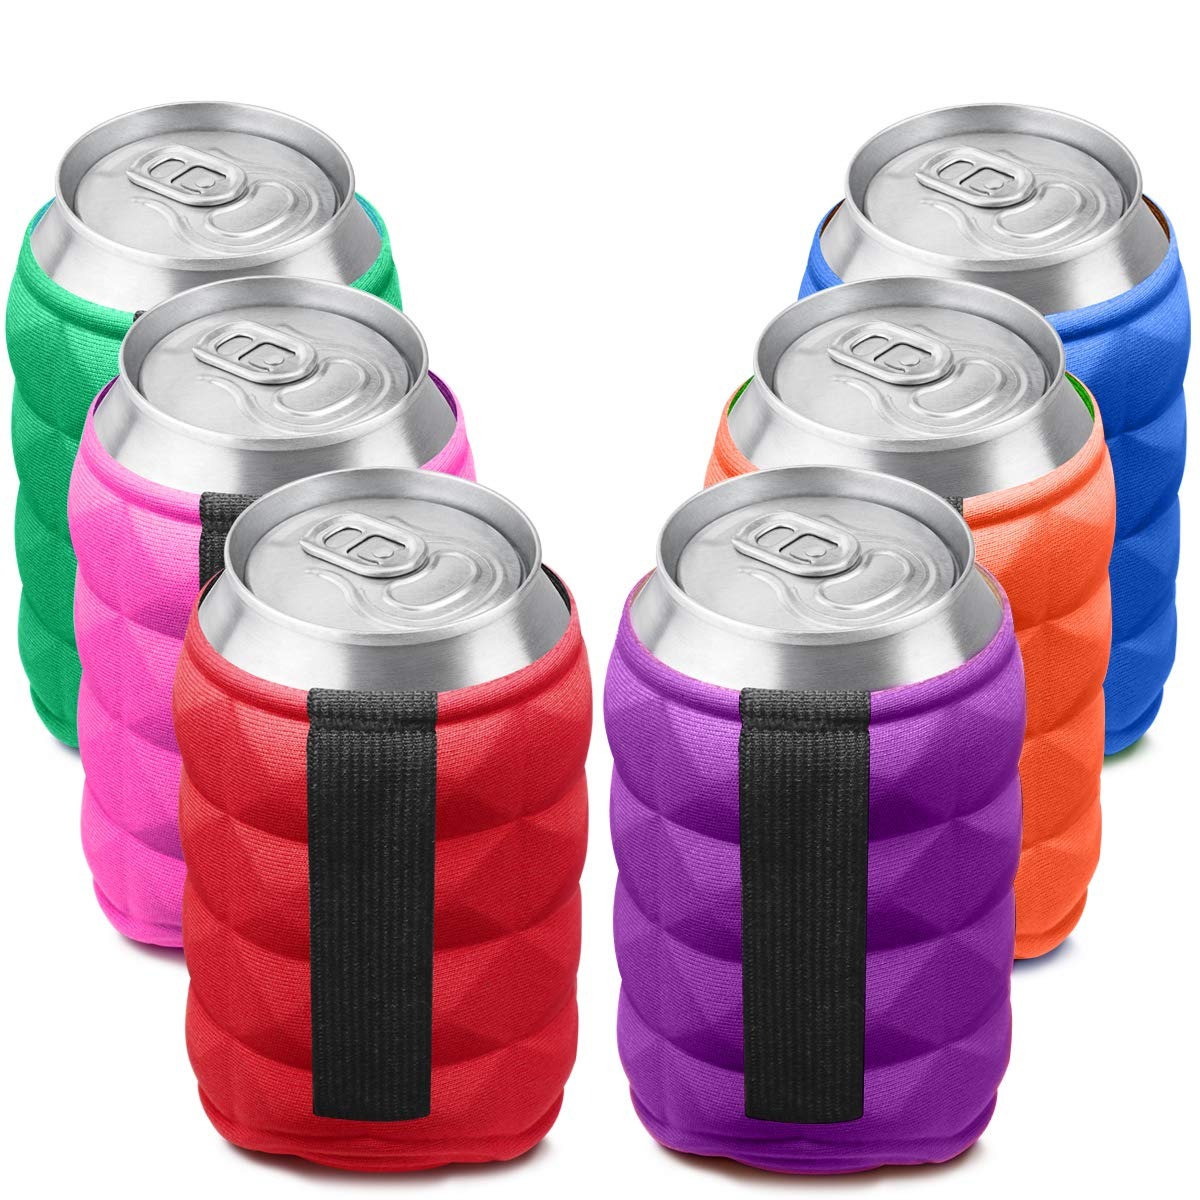 SUPER SOFT Beer Can Cooler Sleeves for Ice Cold Drink, Reversible Double Sided Embossed Design - 6 Pack Collapsible Insulated Soda Bottle Holder Premium Quality Many Color Party Huggies by Metric USA